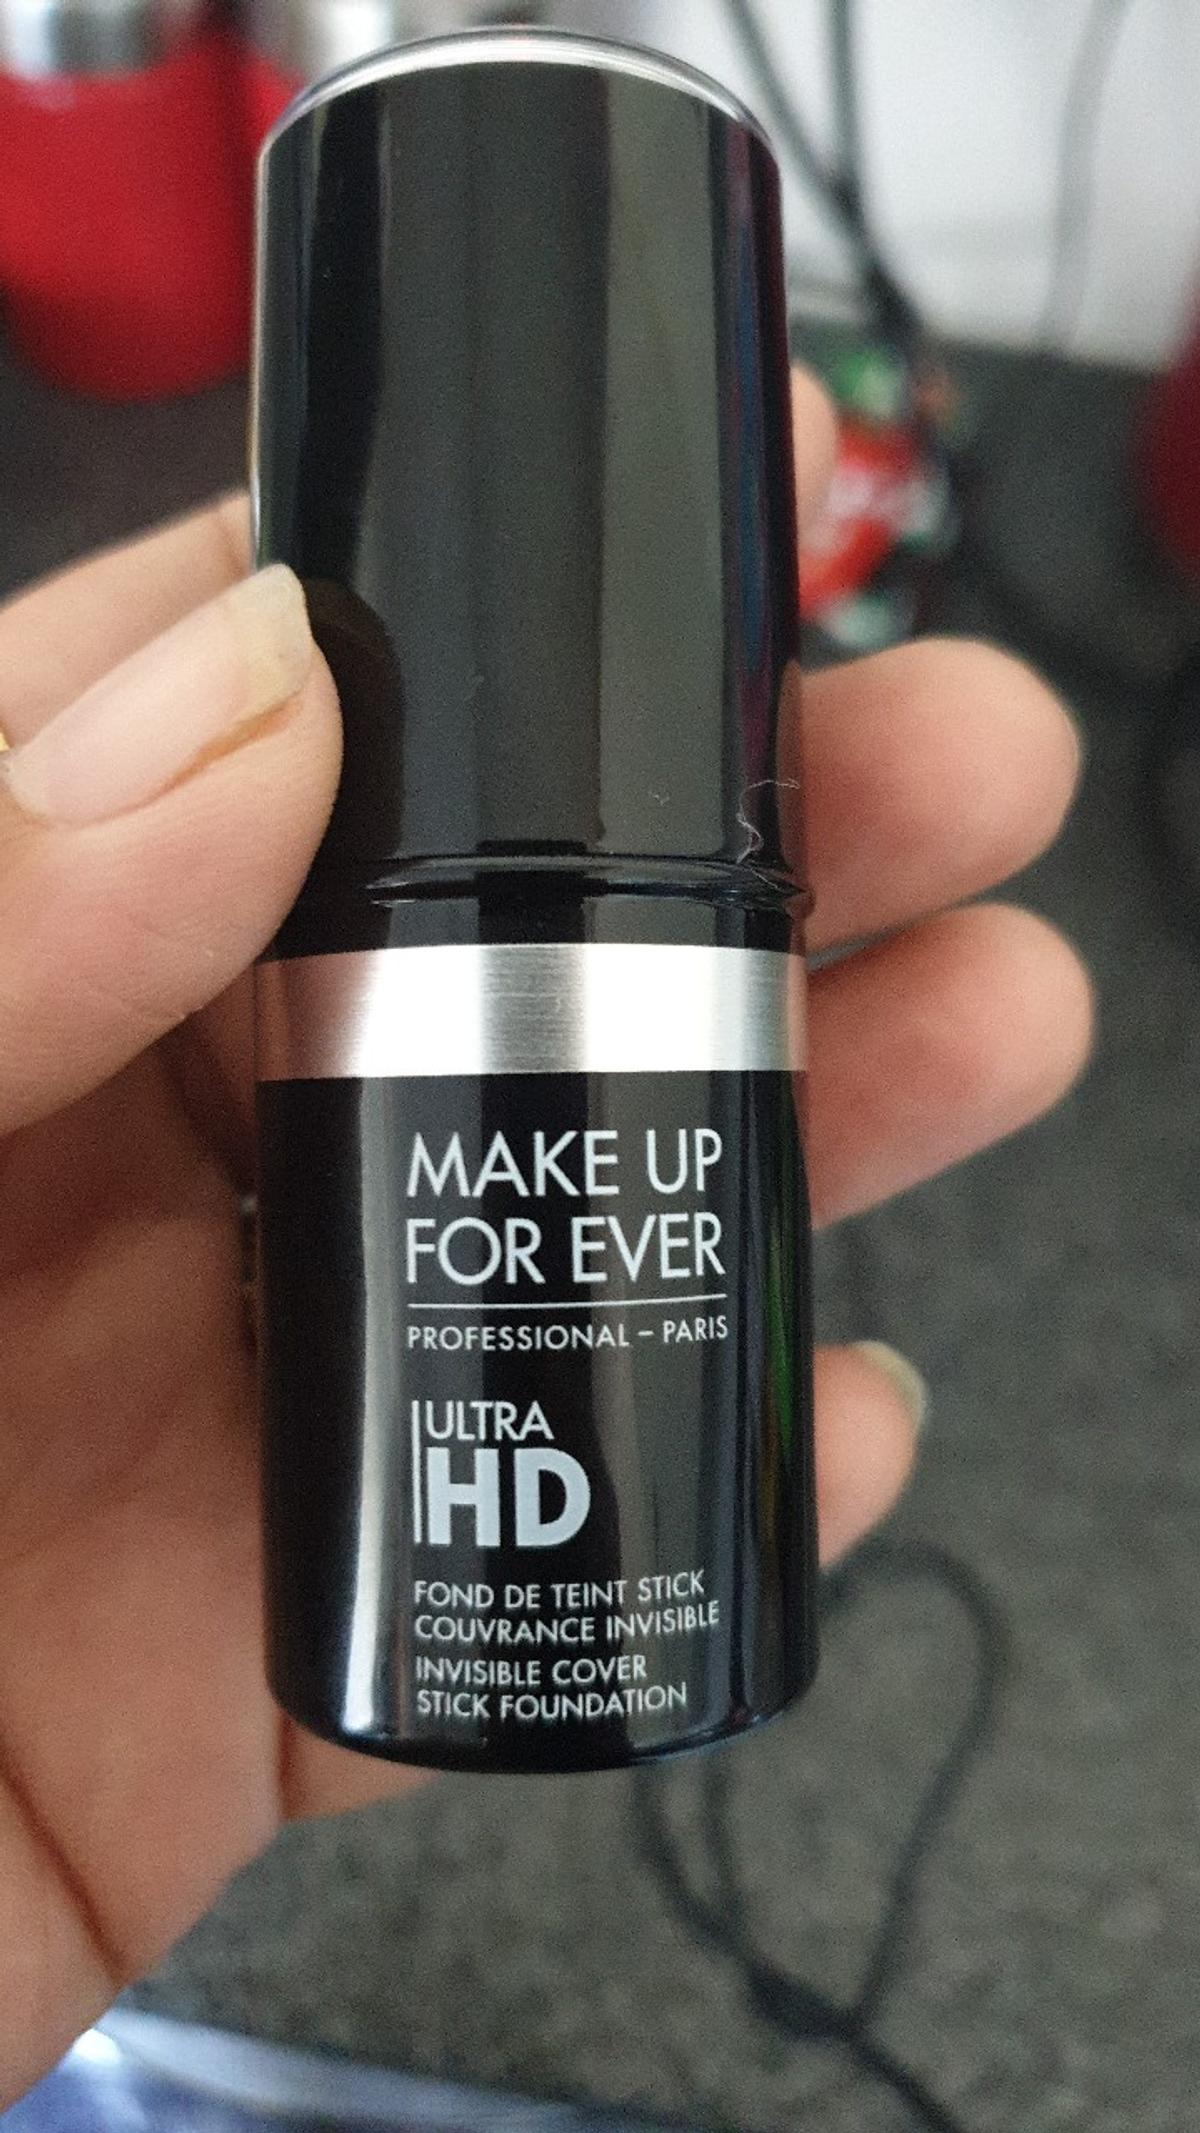 Make Up Forever Hd Foundation Stick In